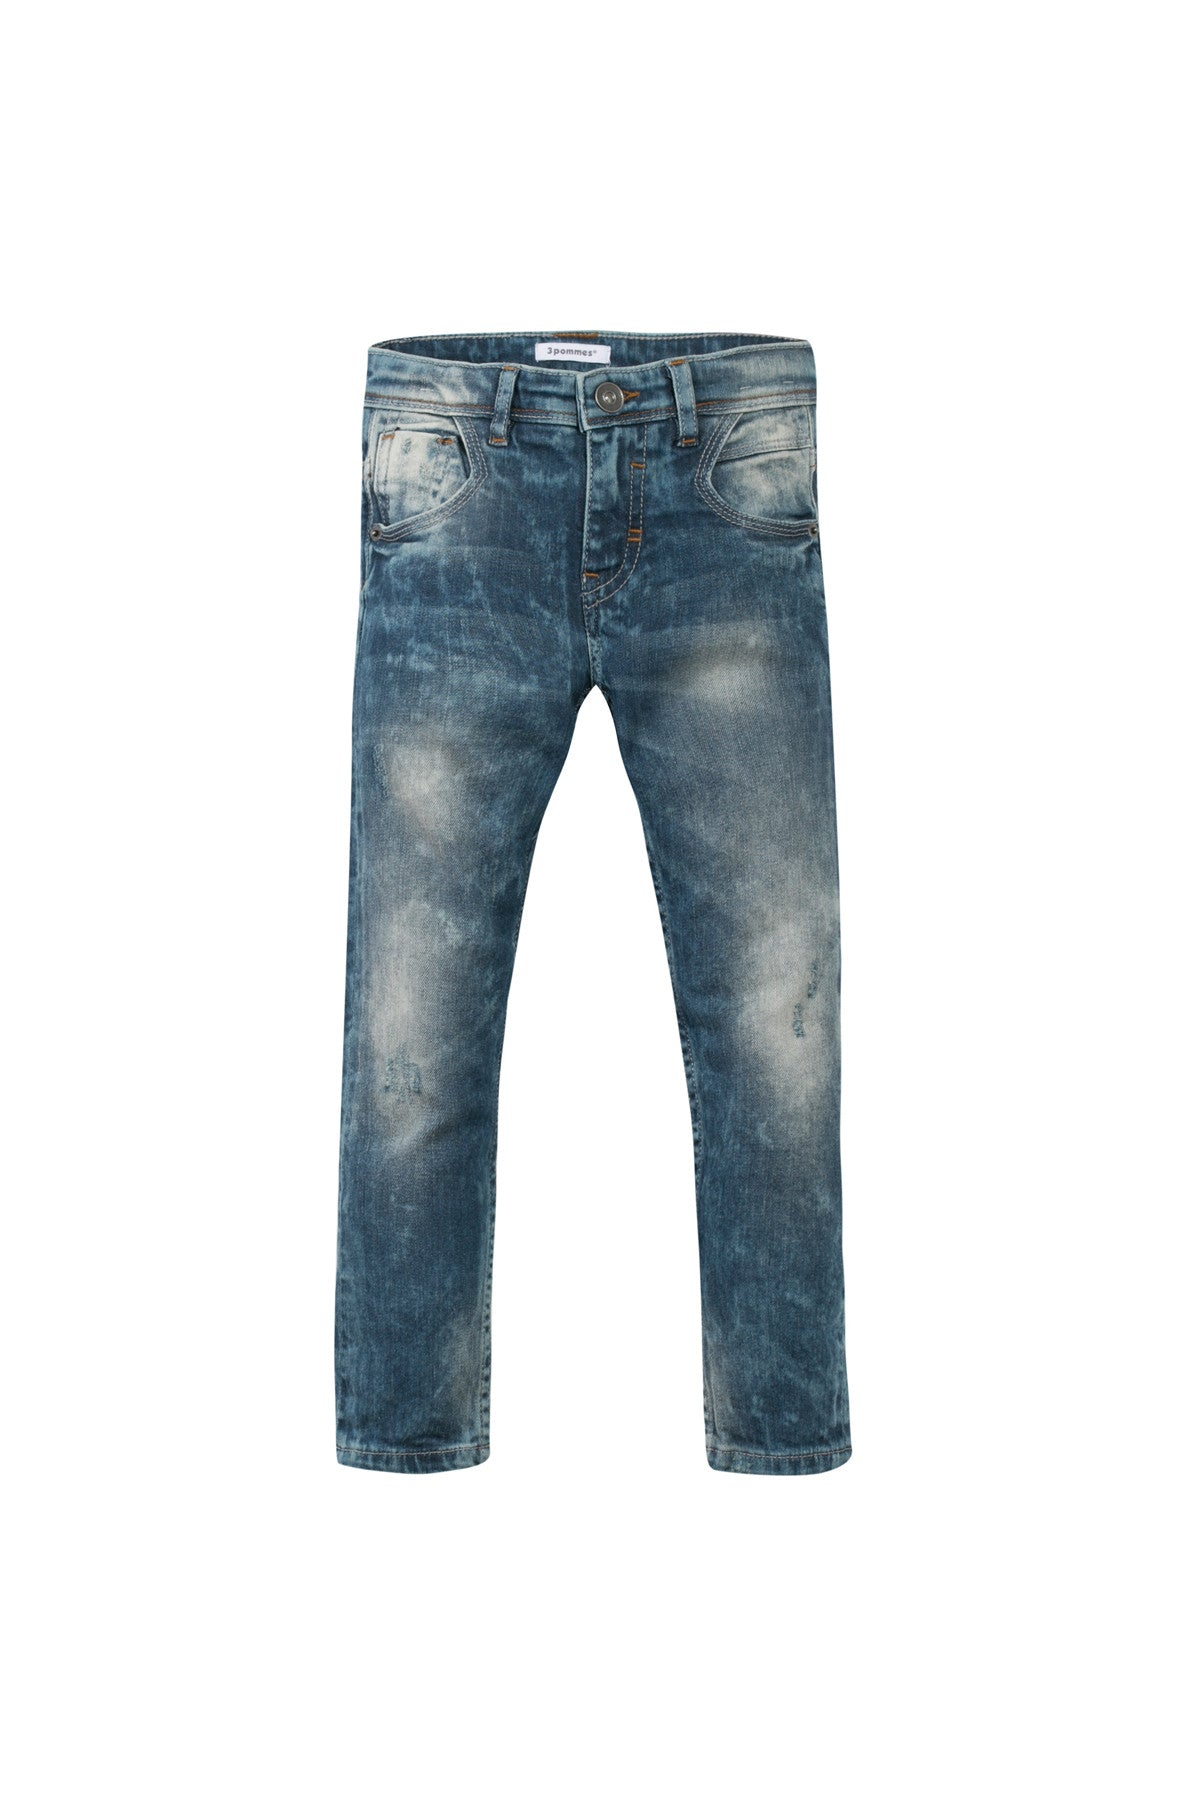 3pommes Boys Faded Jeans